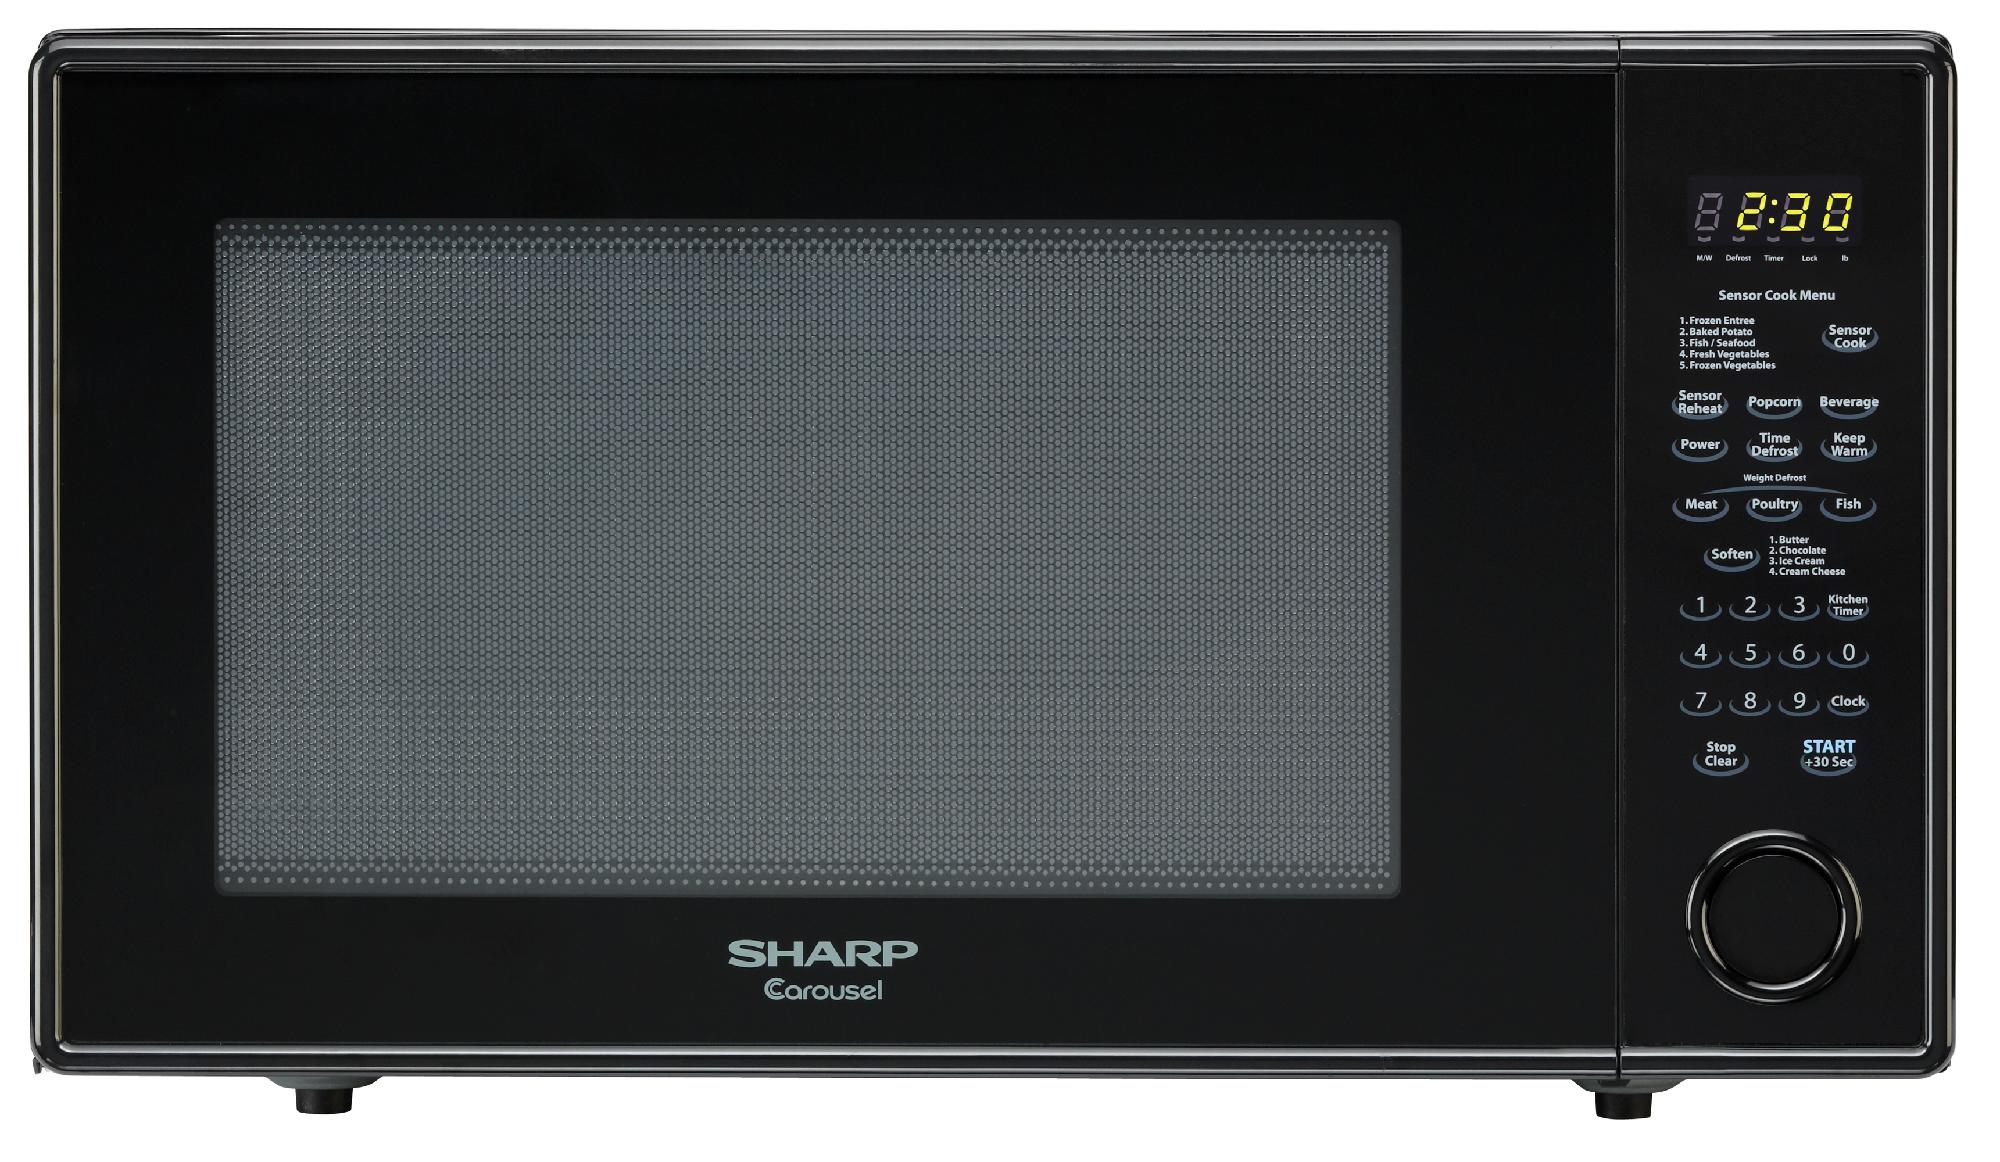 2.2 Cu. Ft. 1200W Countertop Microwave Oven -